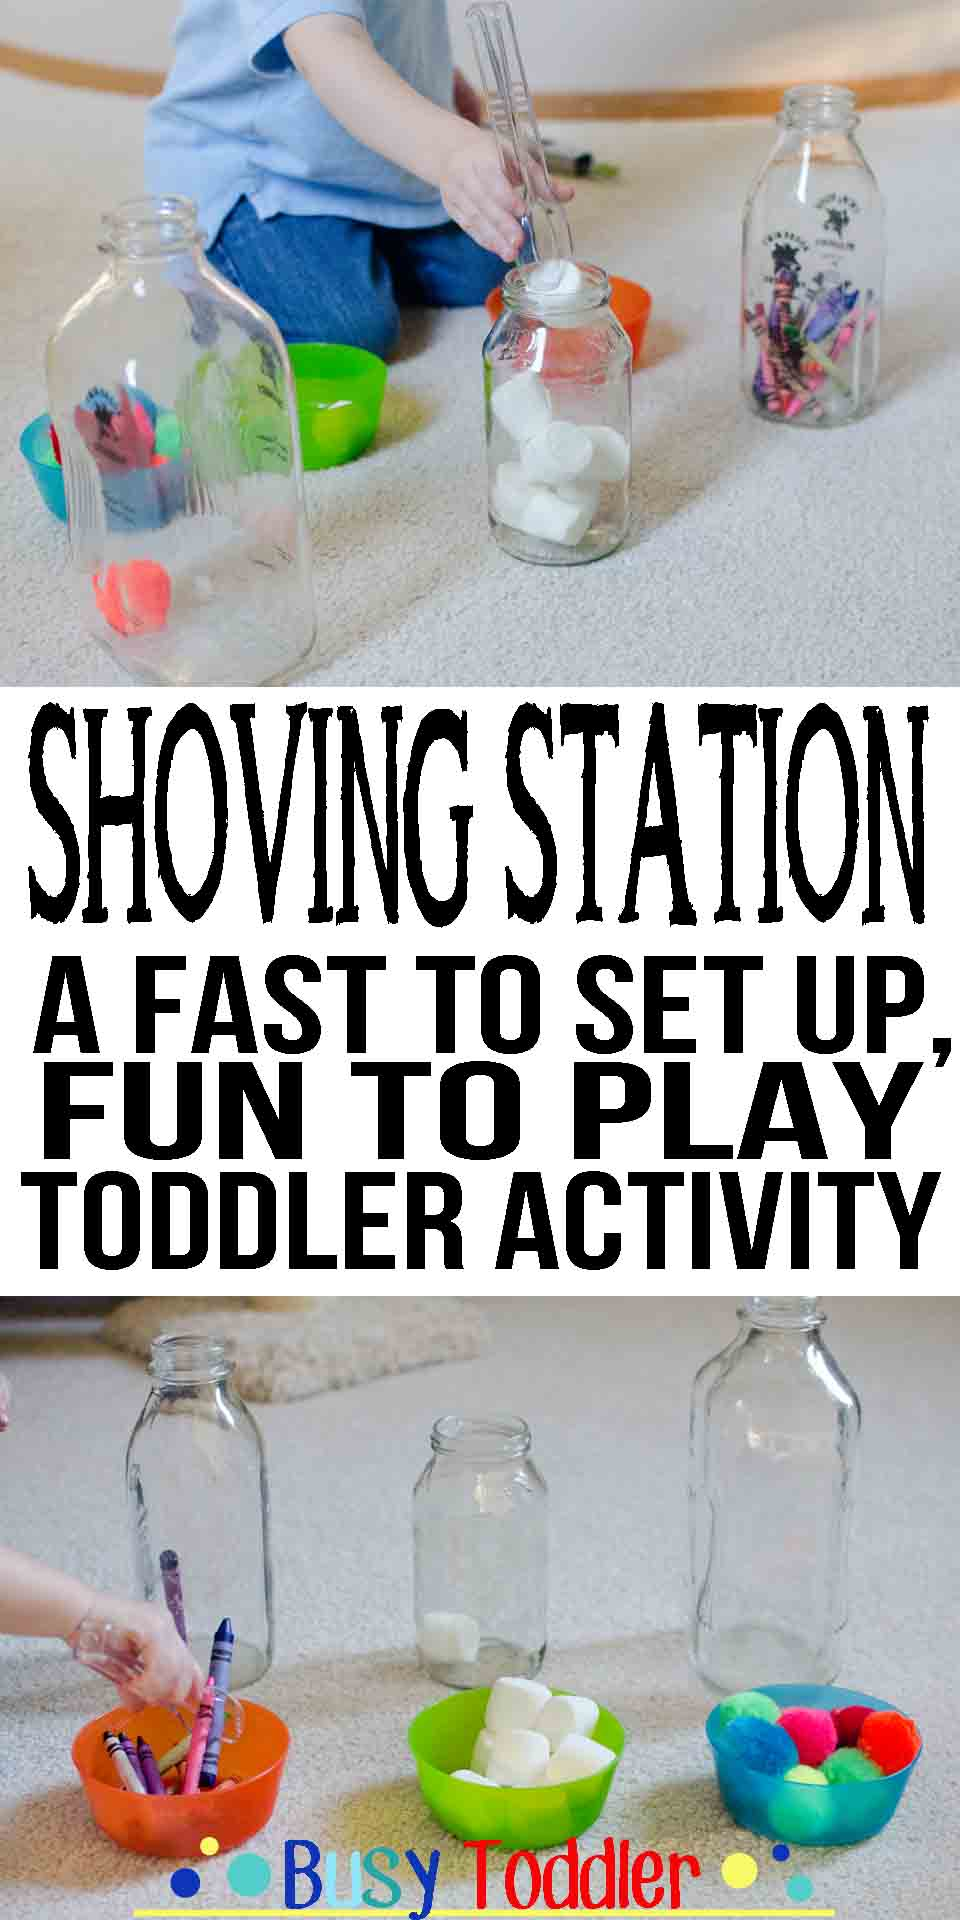 Shoving Station: a fast to set up, fun to play toddler activity